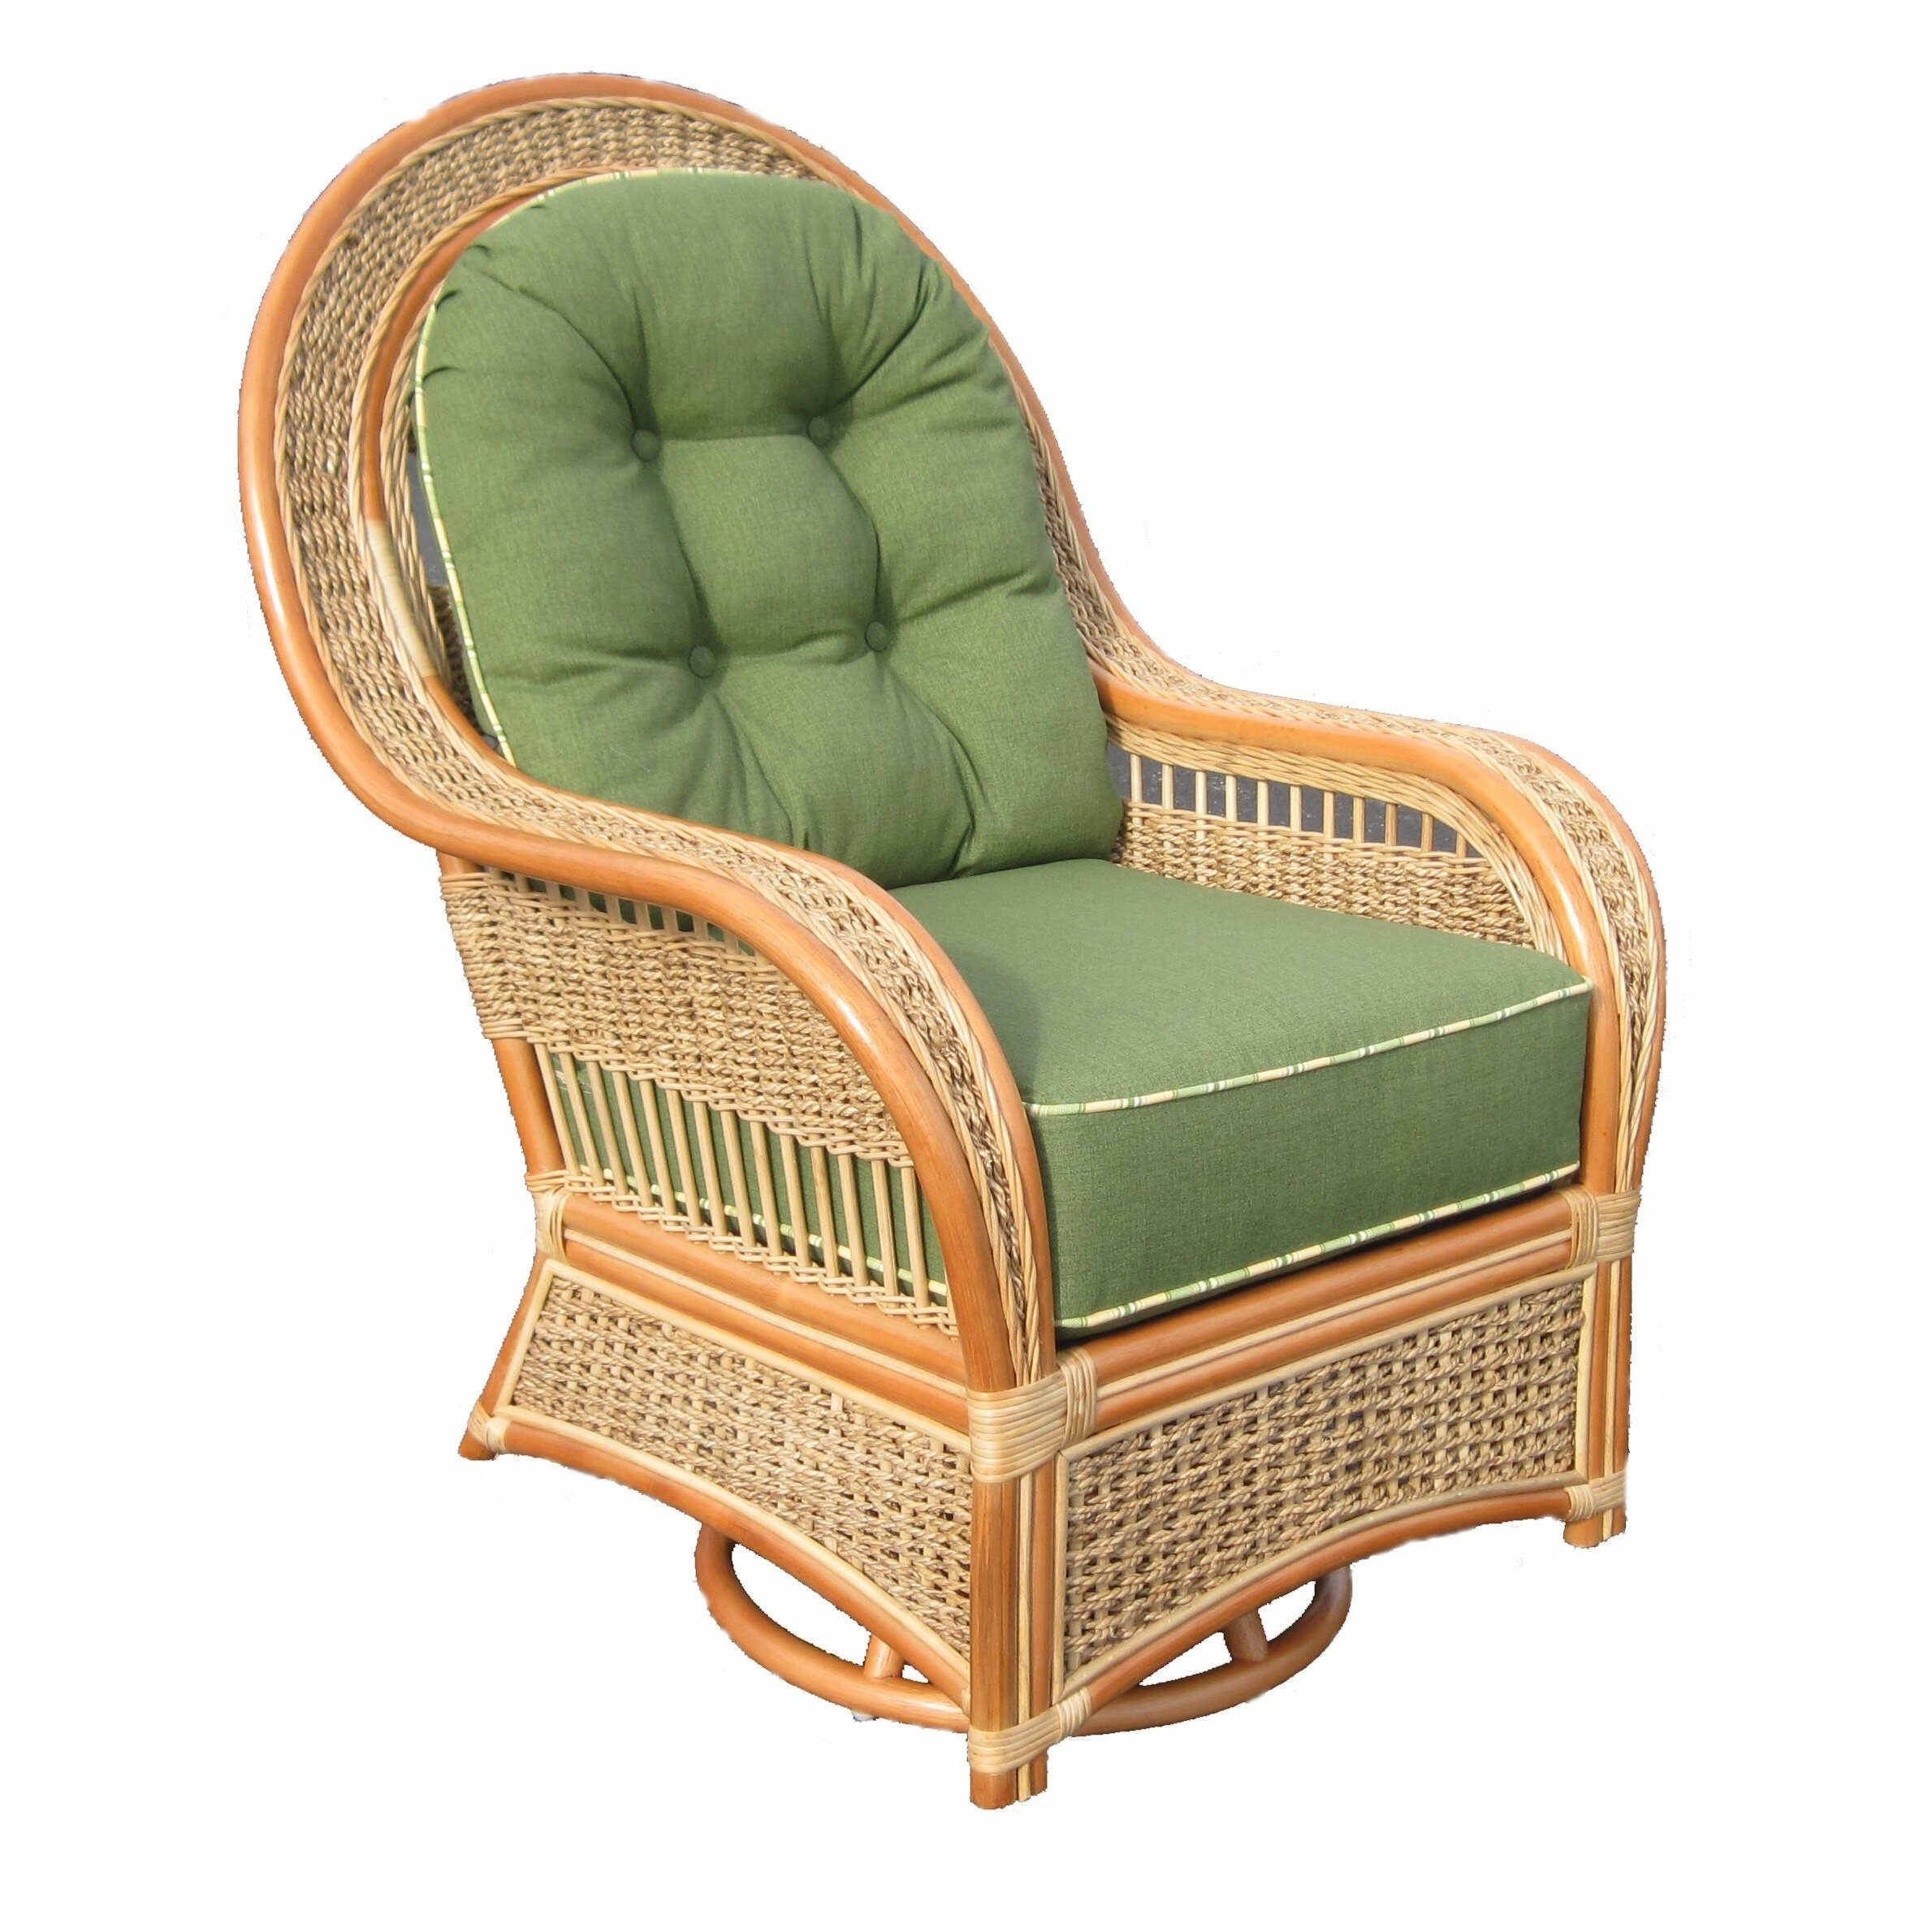 Wicker/Rattan Rocking Chairs Spice .